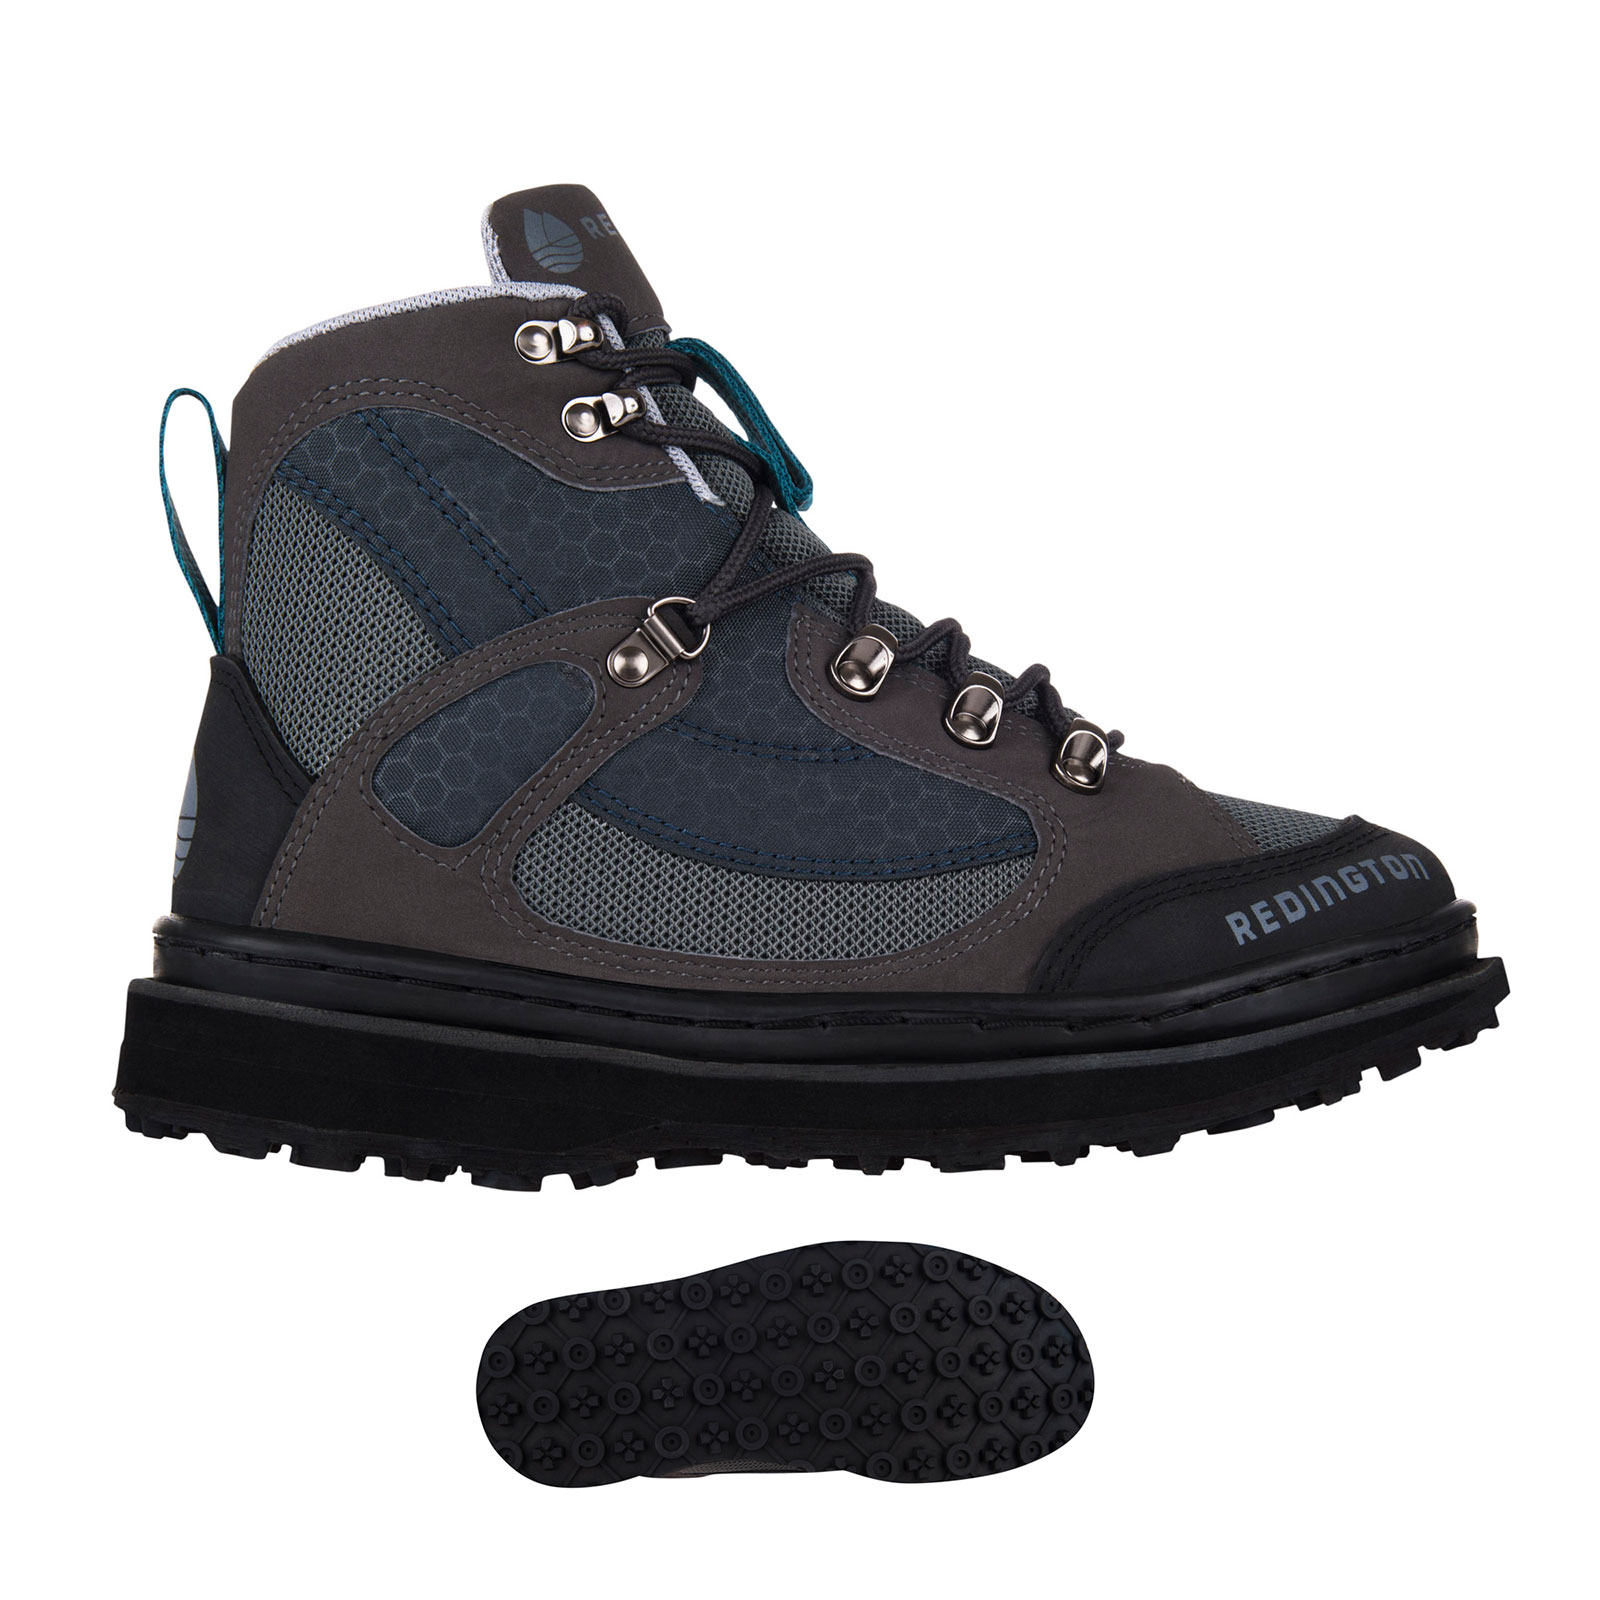 redington willow river womens sticky rubber wading boots